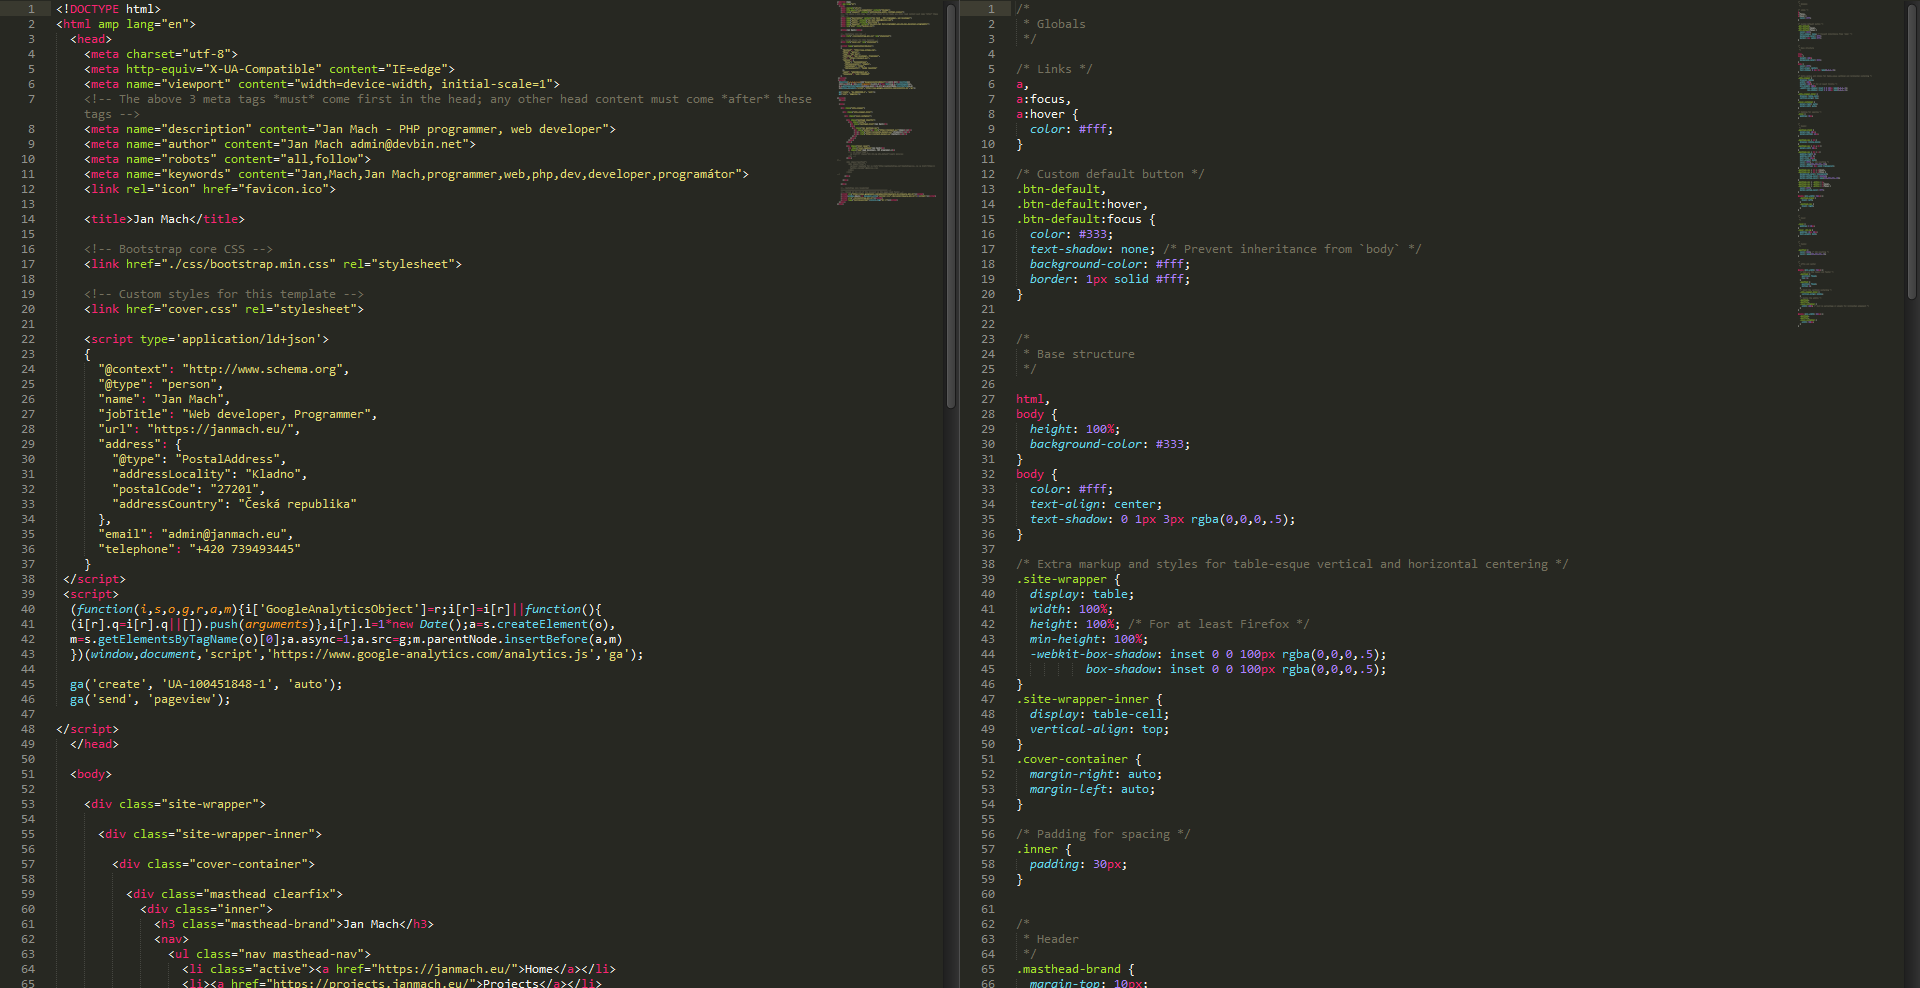 blurred html code of this page in sublime text 3.